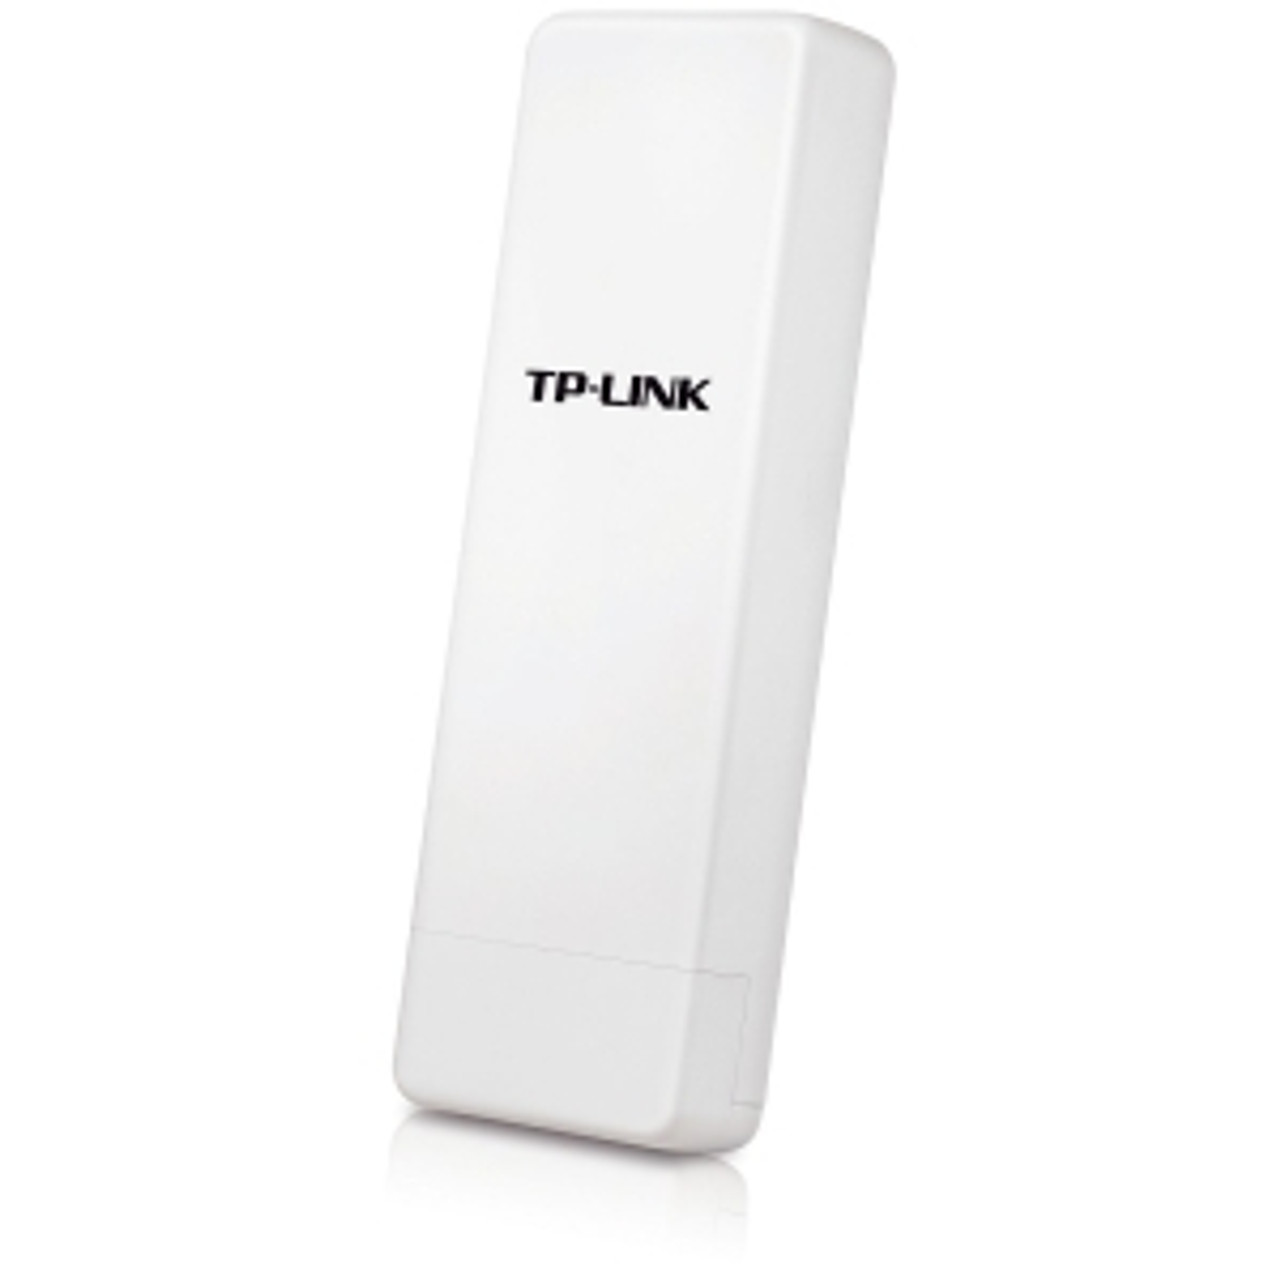 TL-WA7510N TP-Link Outdoor 5GHz 150Mbps High Power Wireless Access Point  WISP Client Router up to 27dBm Atheros 5GHz 802 11a/n High Sensitivity  Integr